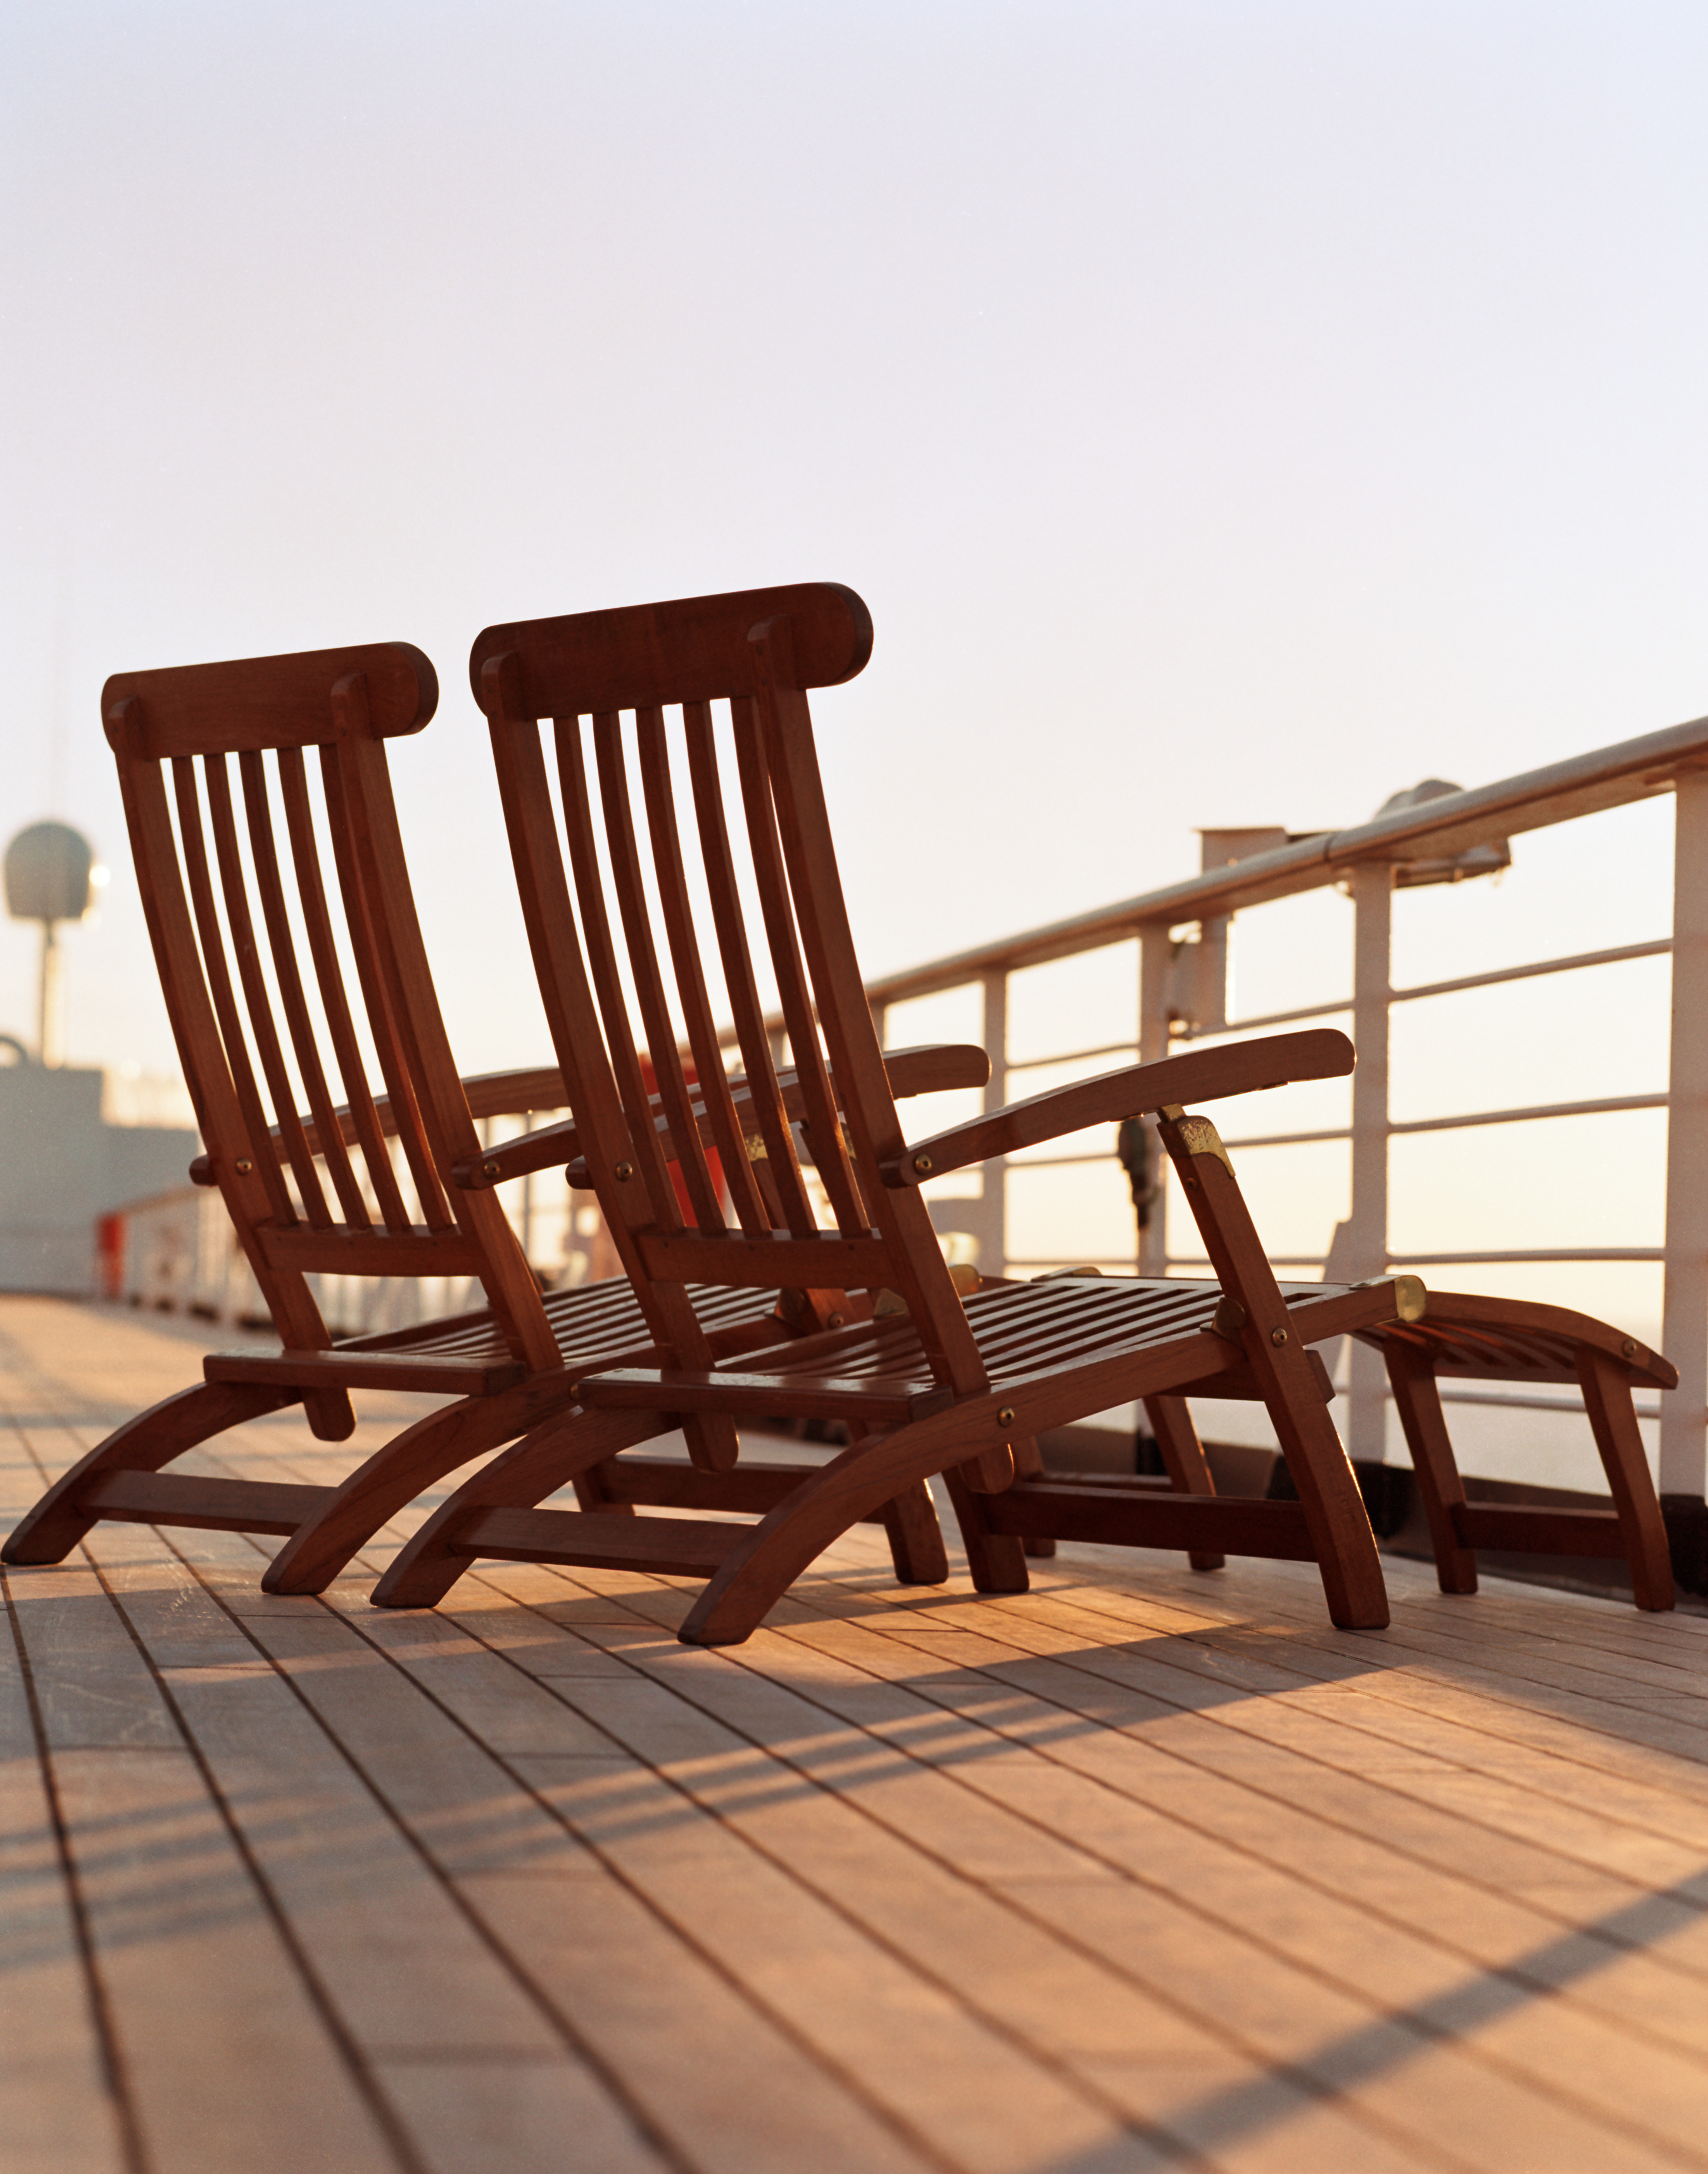 Deck chairs on the deck of Holland America Line's ms Oosterdam